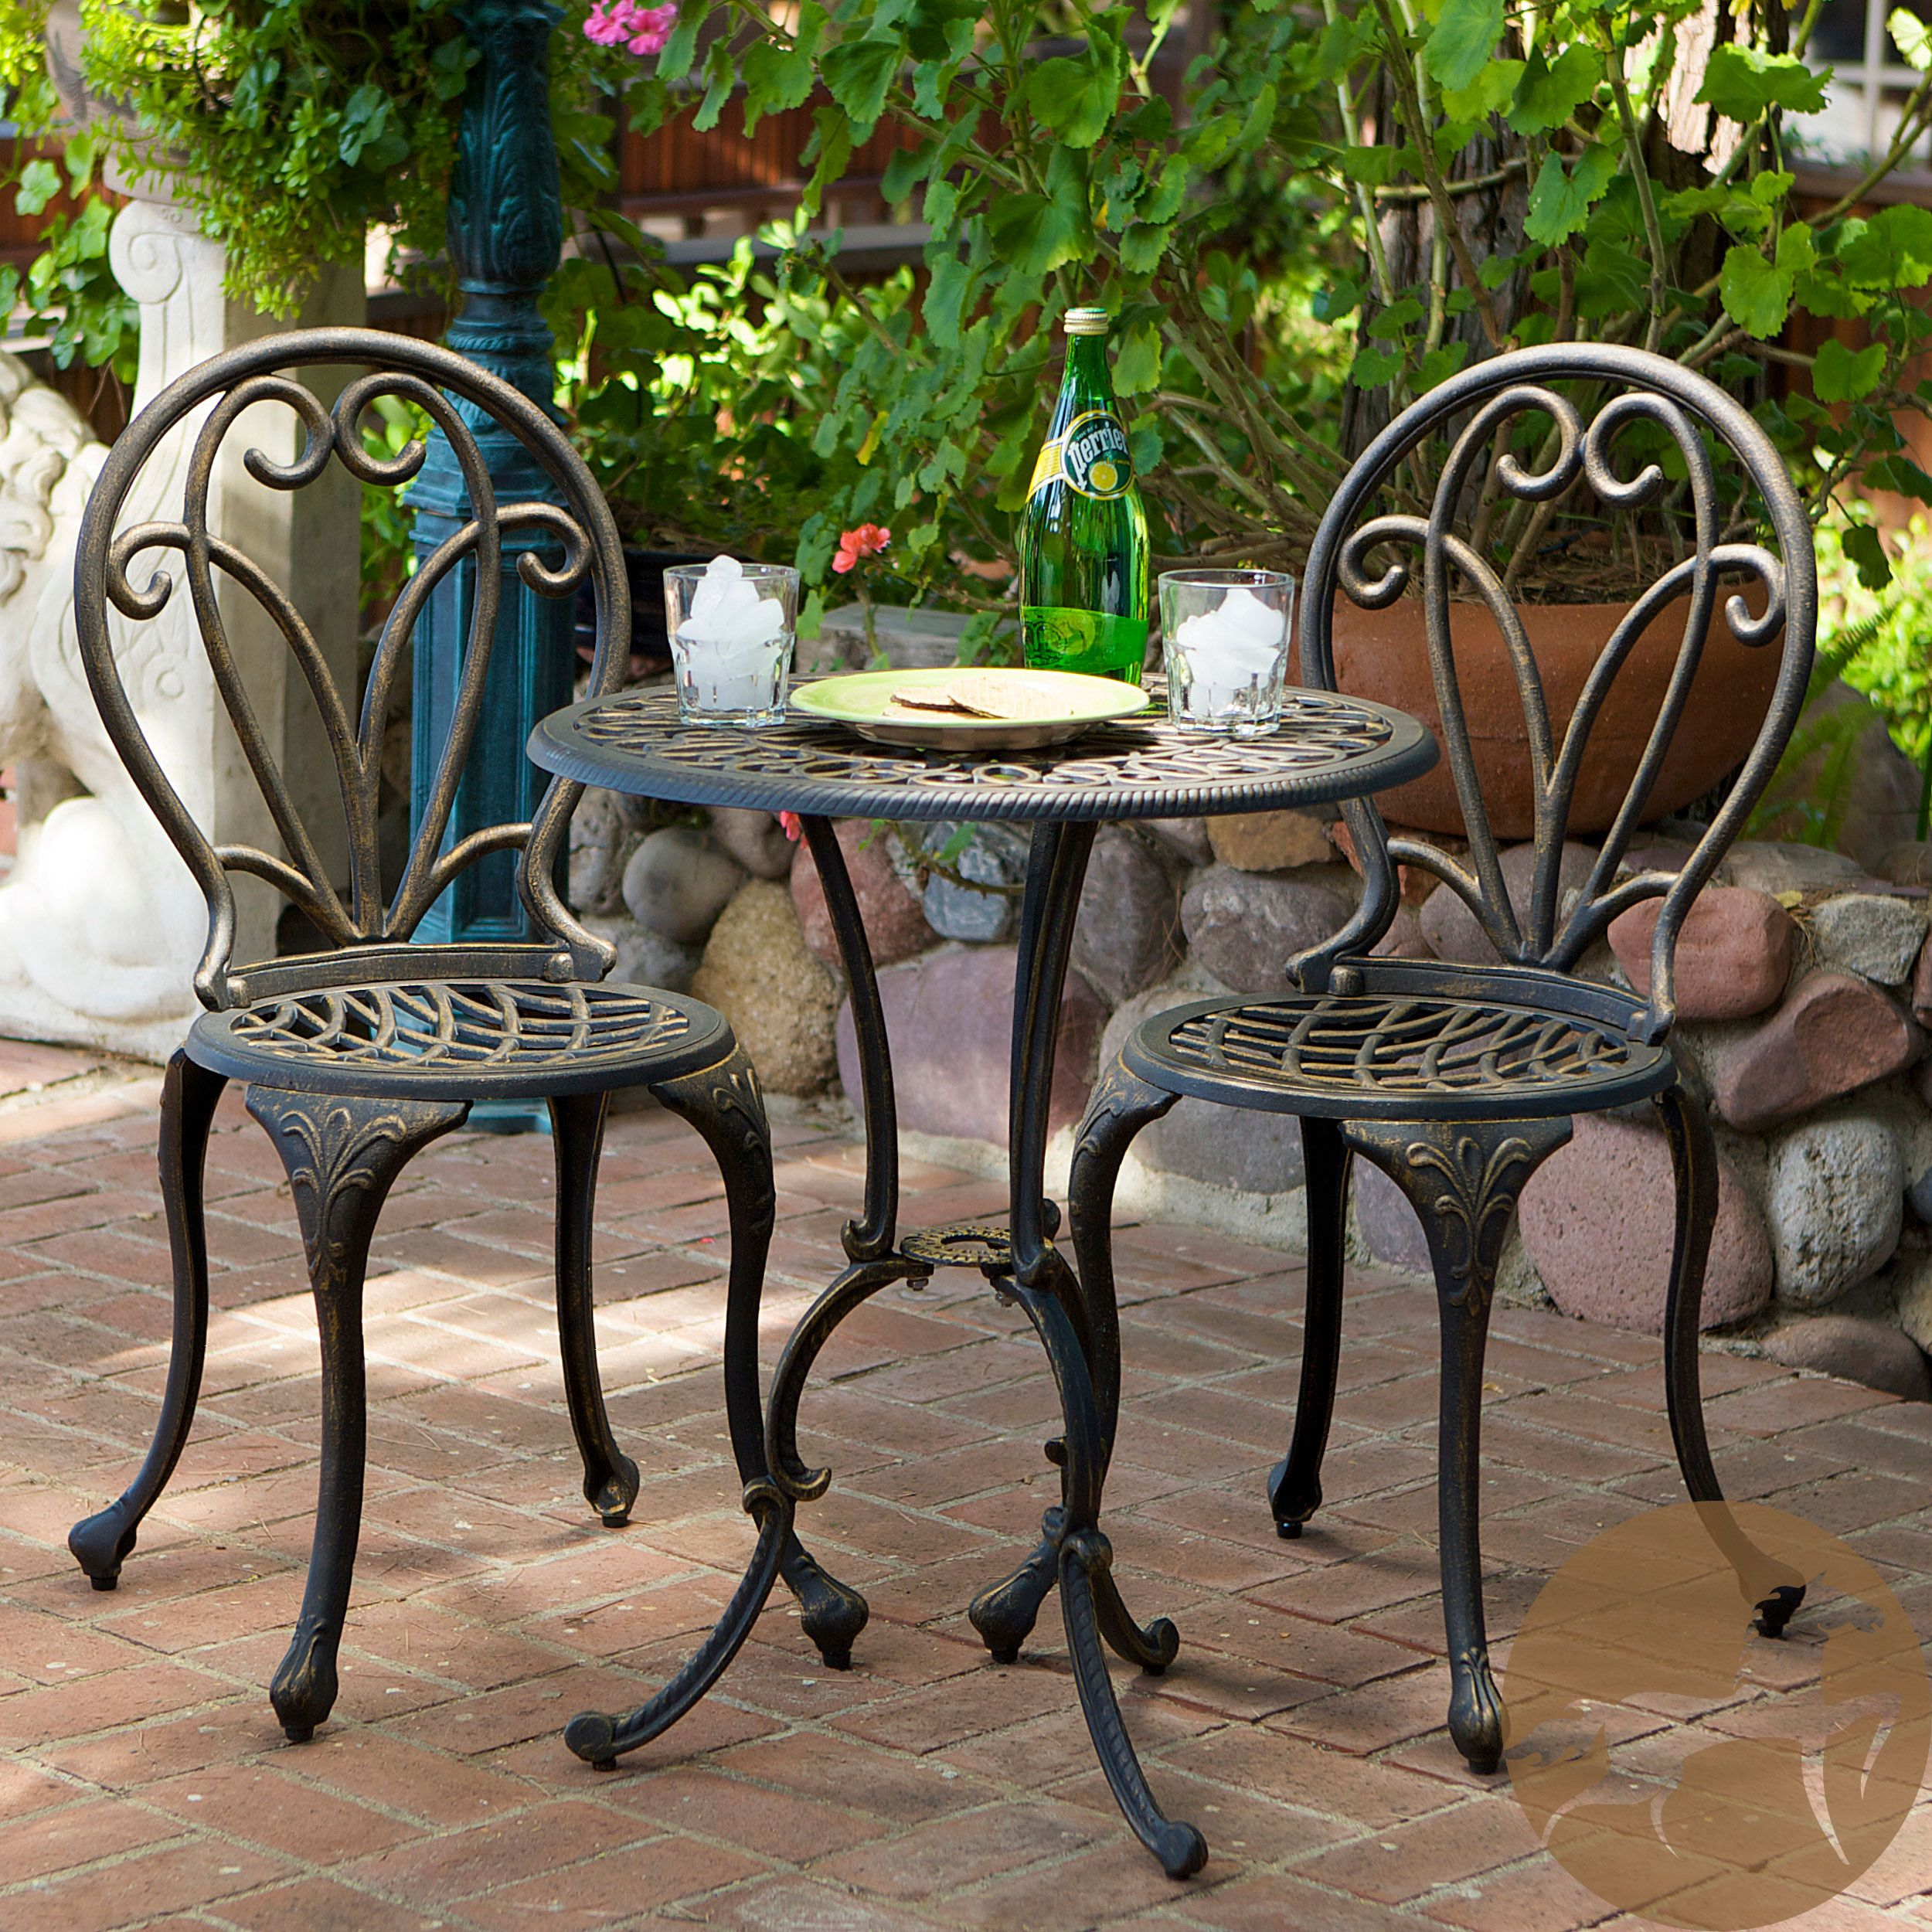 This french style outdoor bistro set will lend classy Cast iron garden furniture